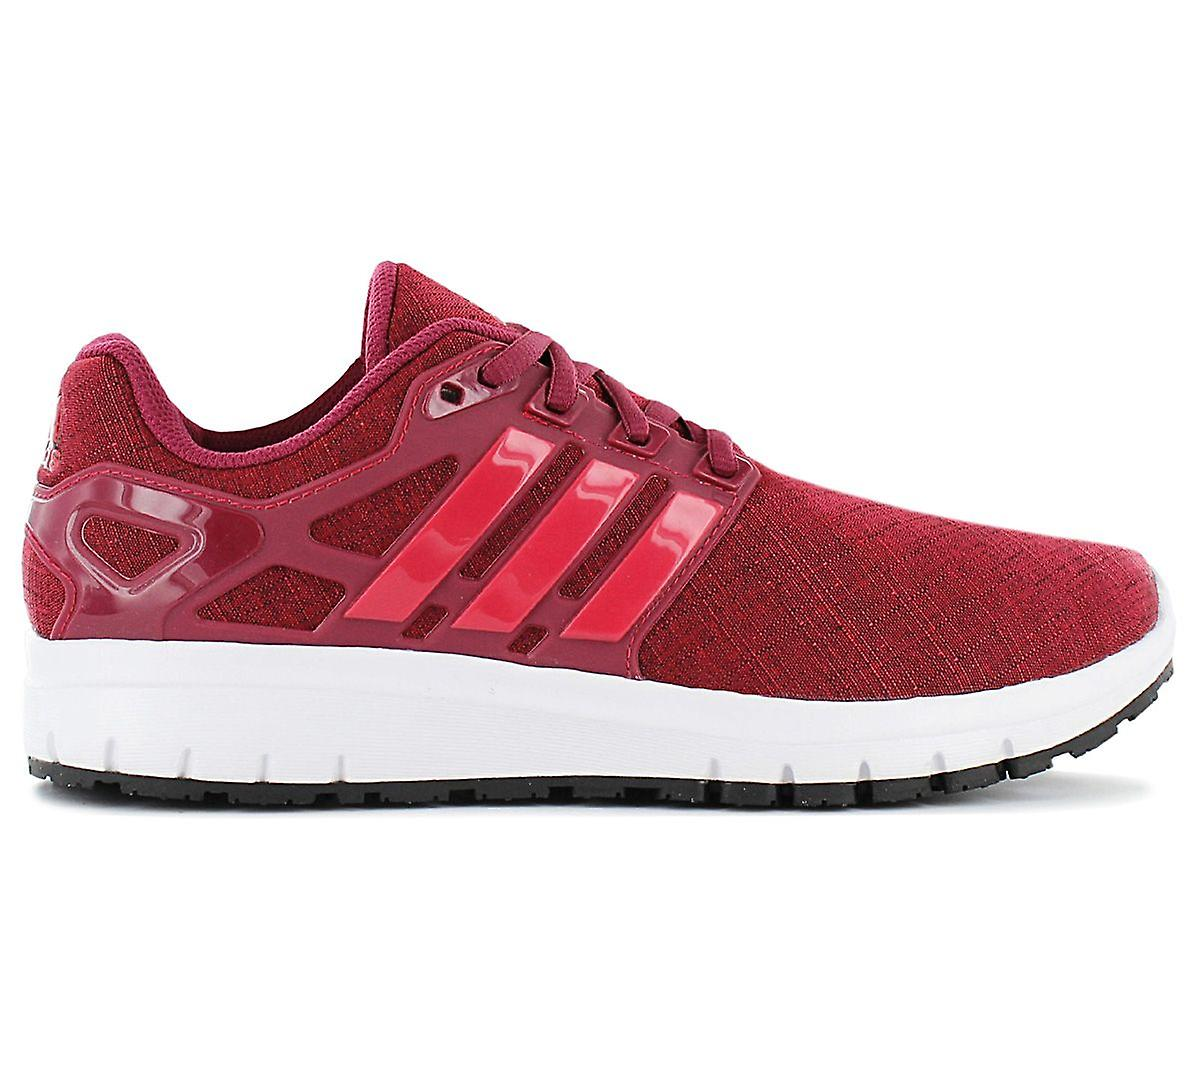 adidas Energy Cloud - Women's Running Shoes Red CG3019 Sneakers Sports Shoes